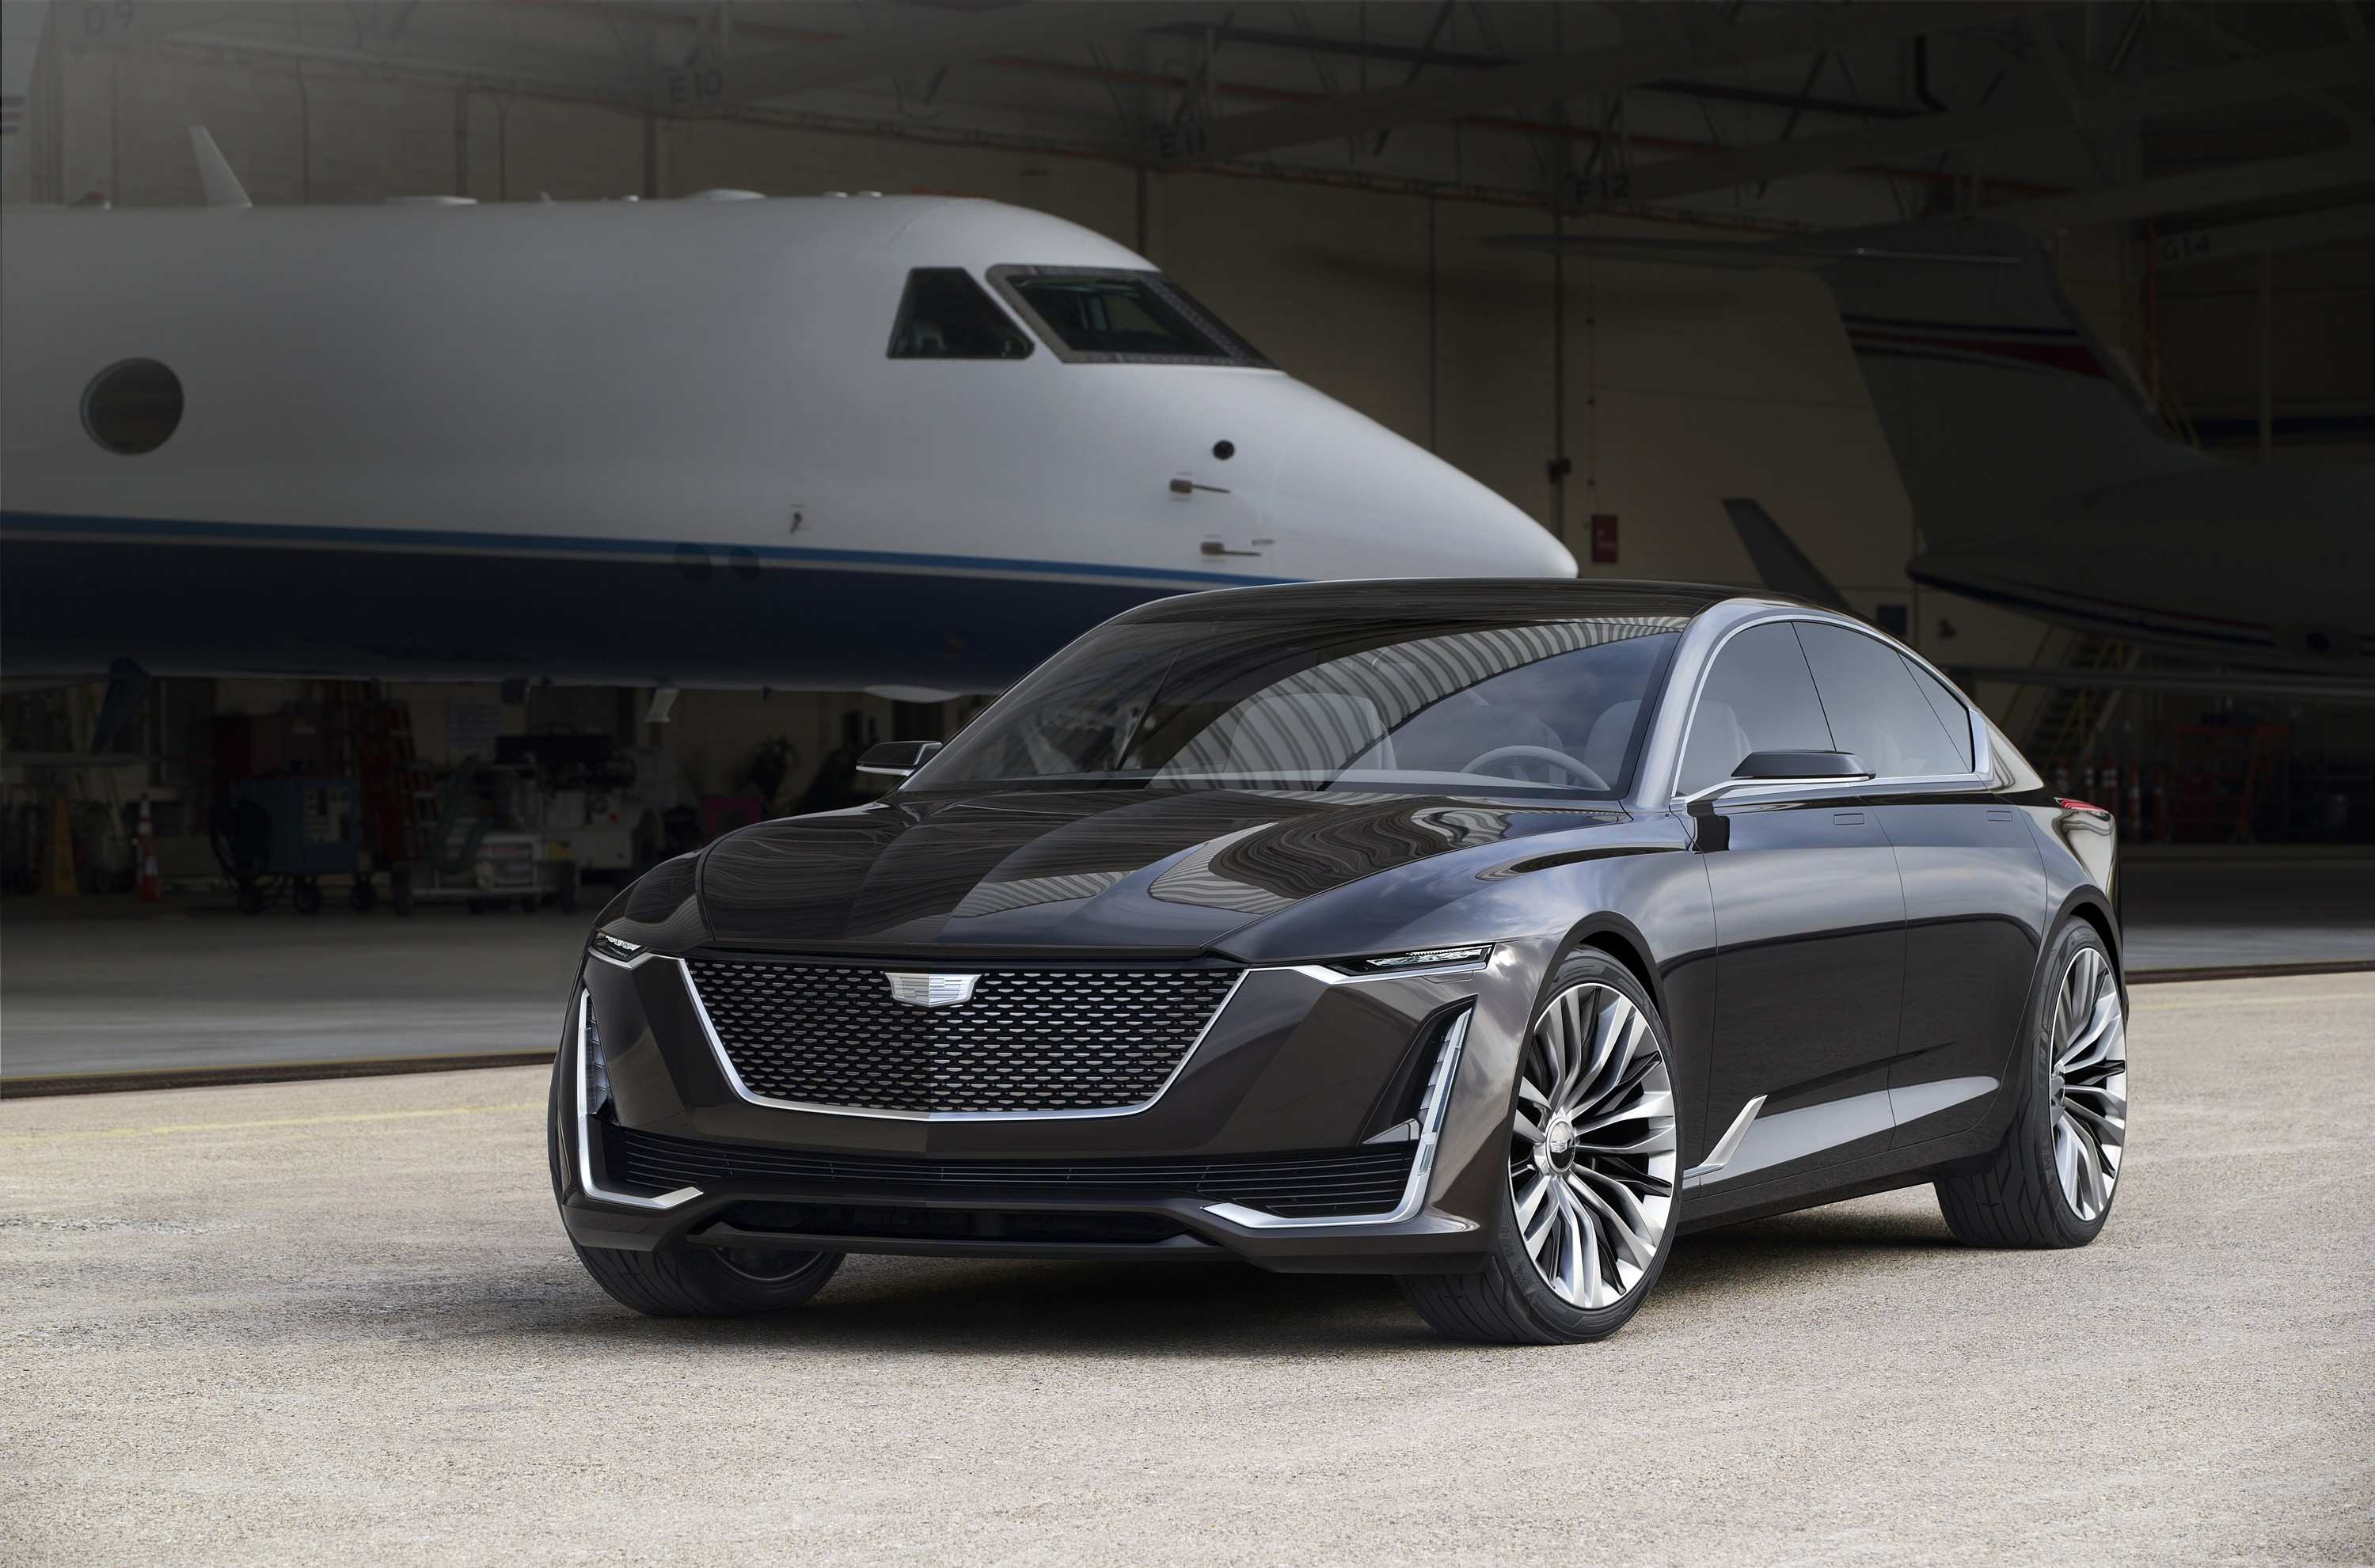 56 The Best Cadillac Ats 2020 Images